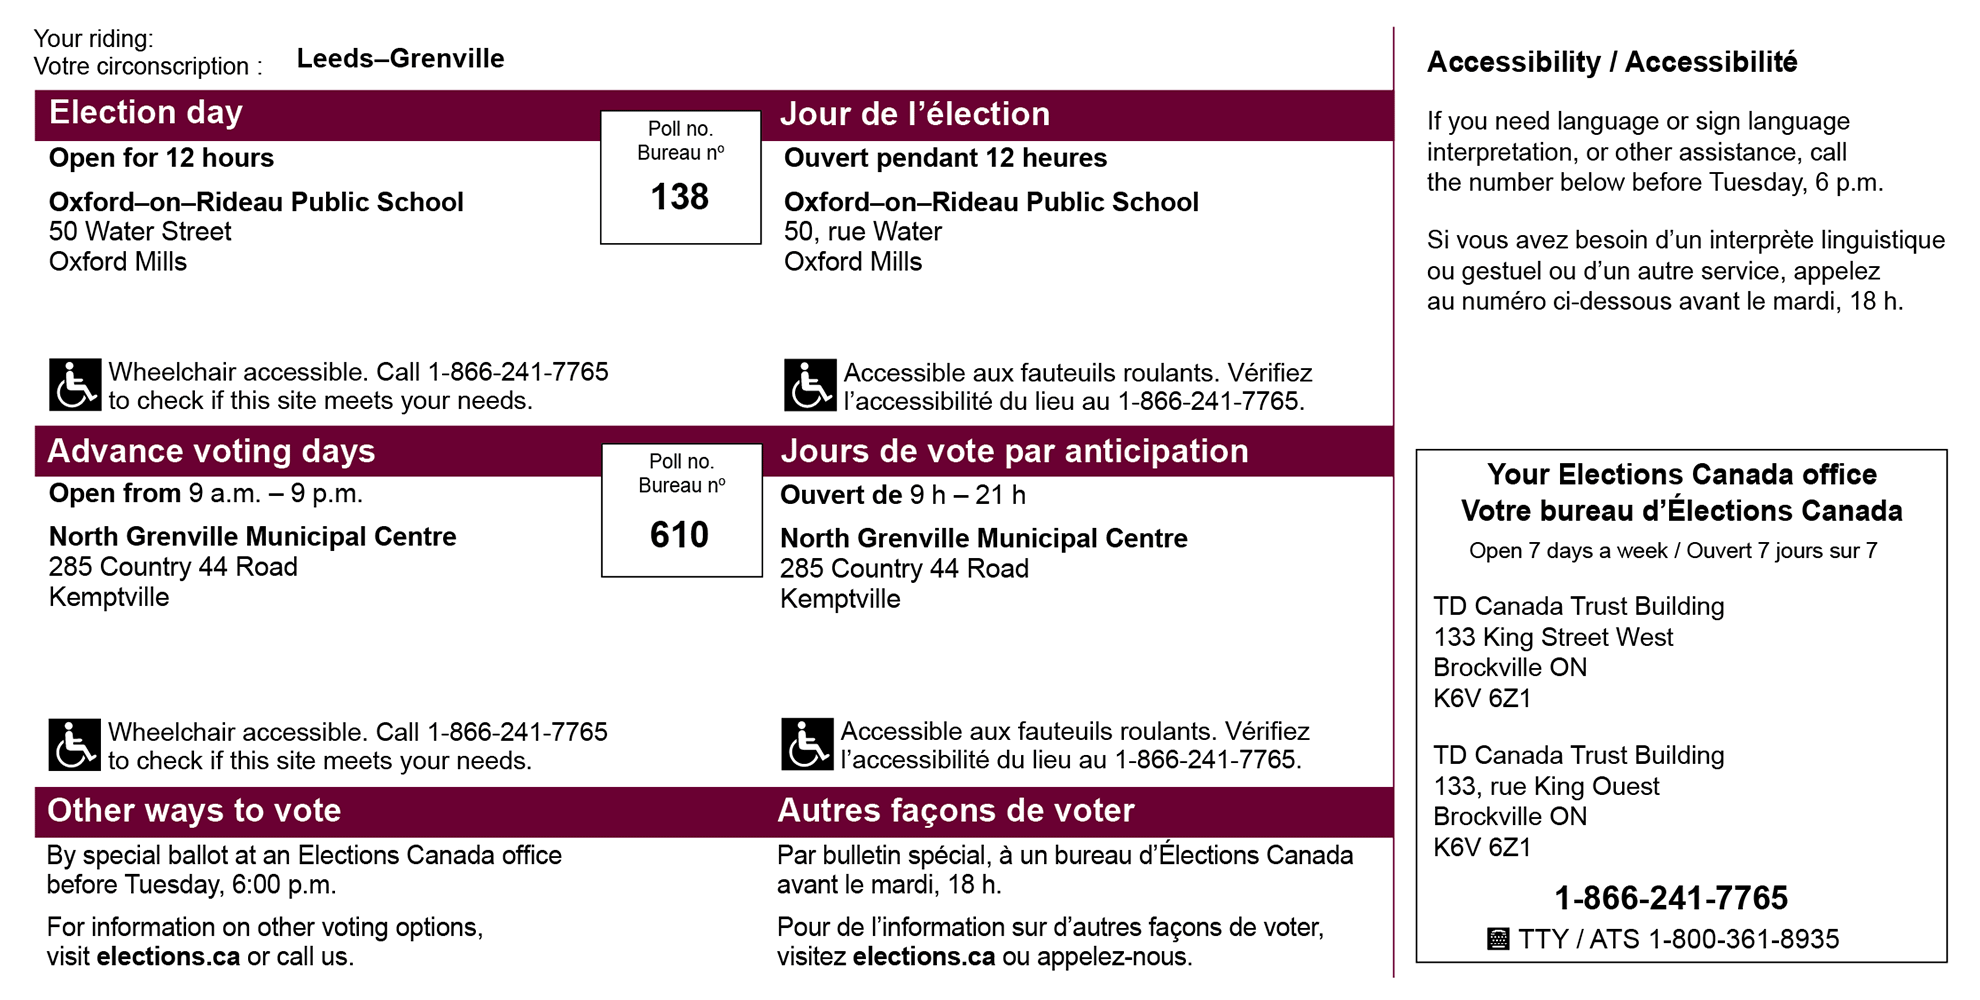 Image of an Elections Canada voter information card showing where to vote on election day, at advance polls, the accessibility of the polling stations, and how to get more information about accessibility and other ways to vote